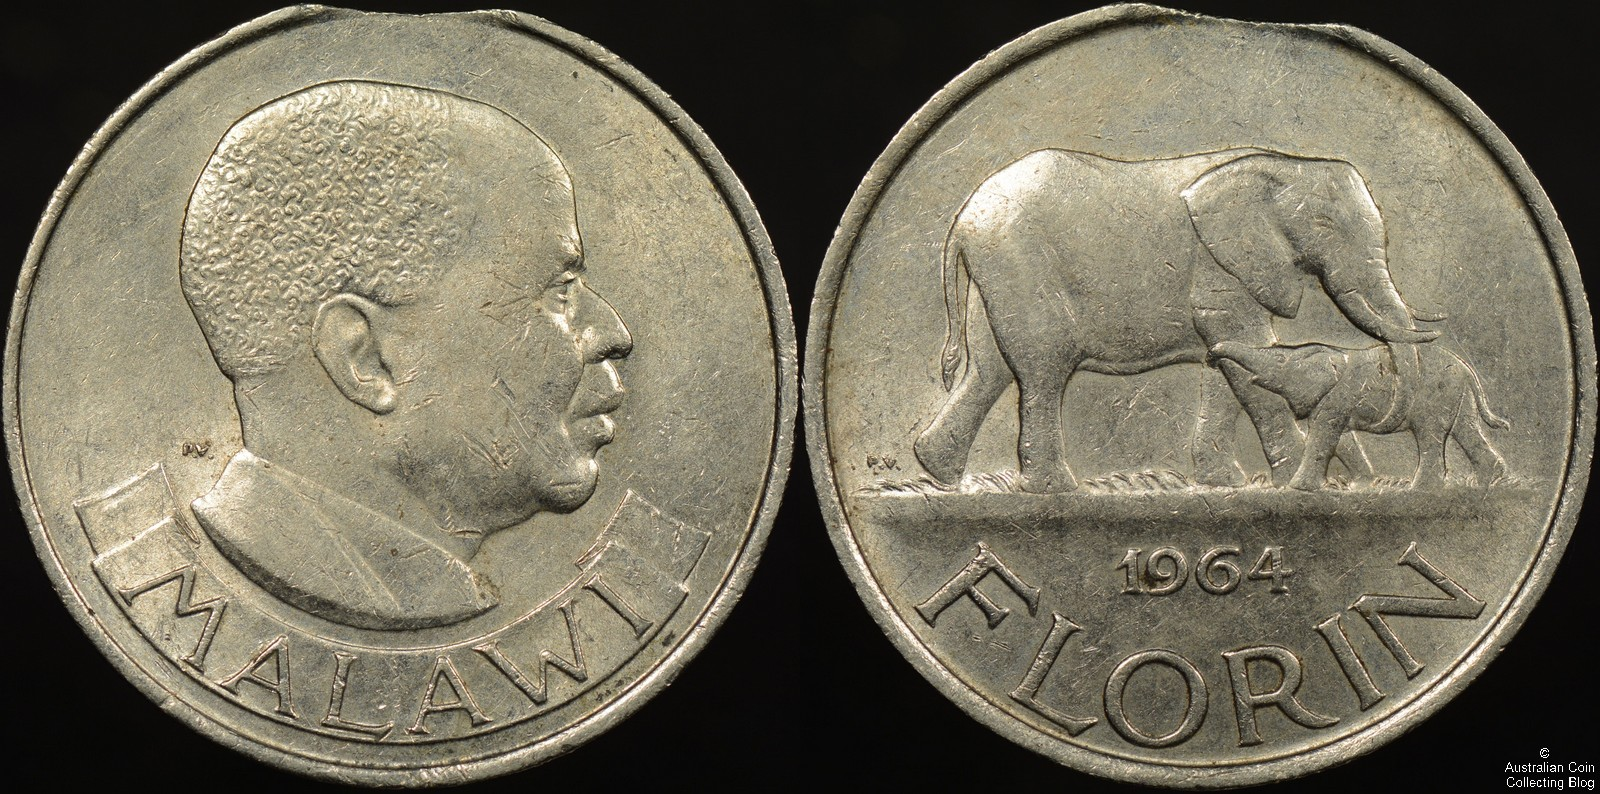 Malawi 1964 Florin Clipped Planchet Error